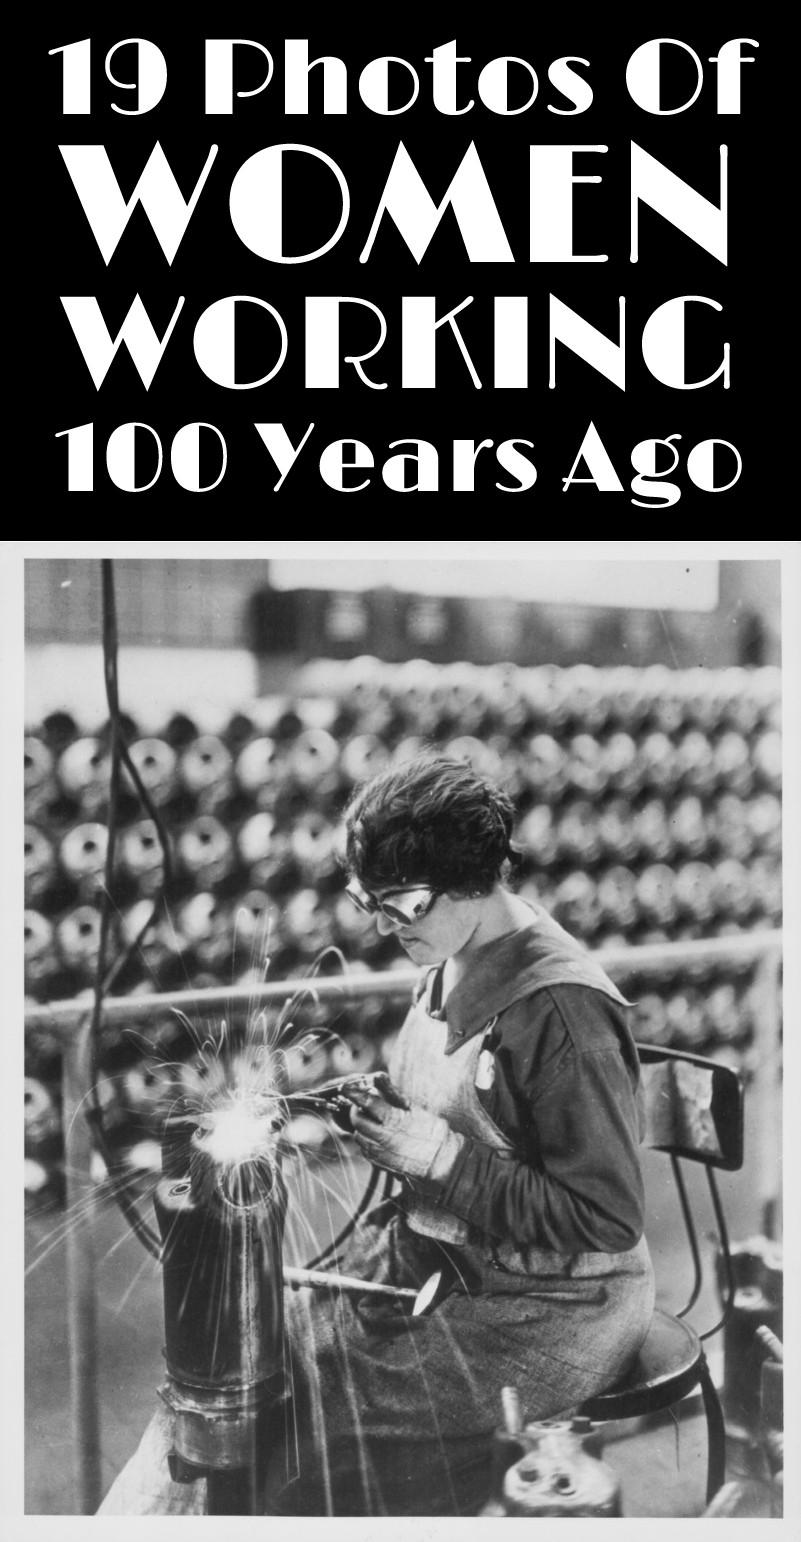 womenworking100yearsago